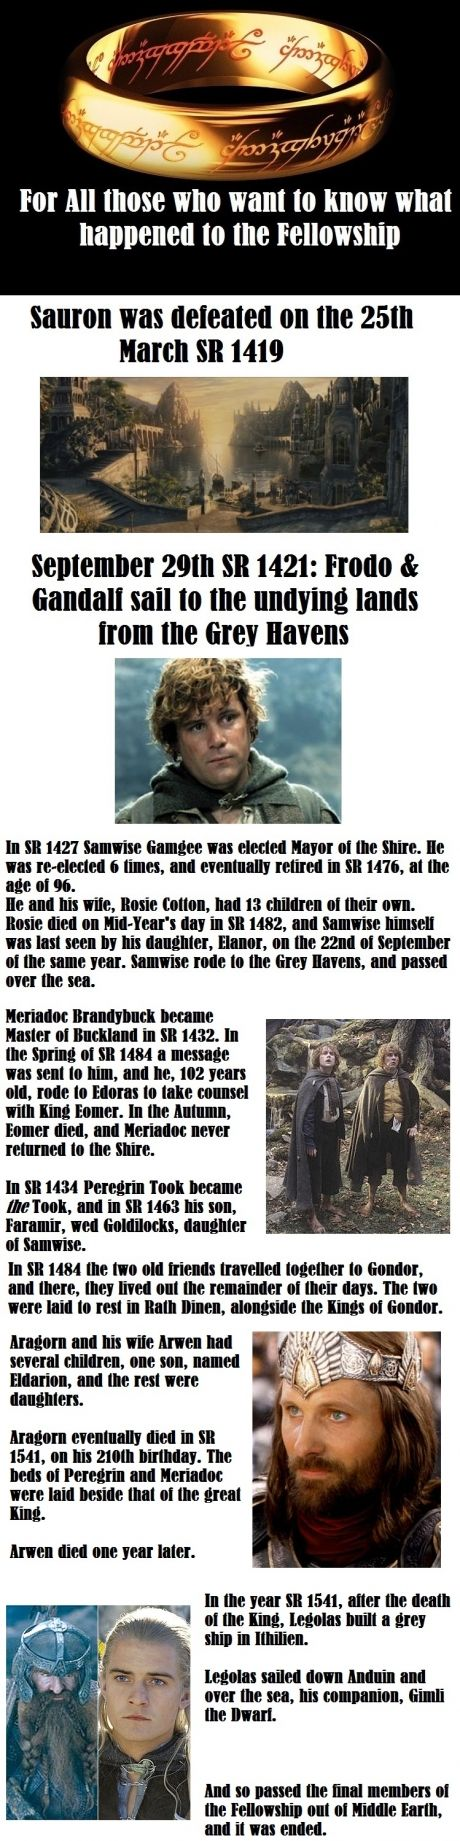 Notice that Samwise was last seen on SEPT. 22 (Bilbo and Frodo's birthday) and then rode to the Grey Havens! Right in the feels...